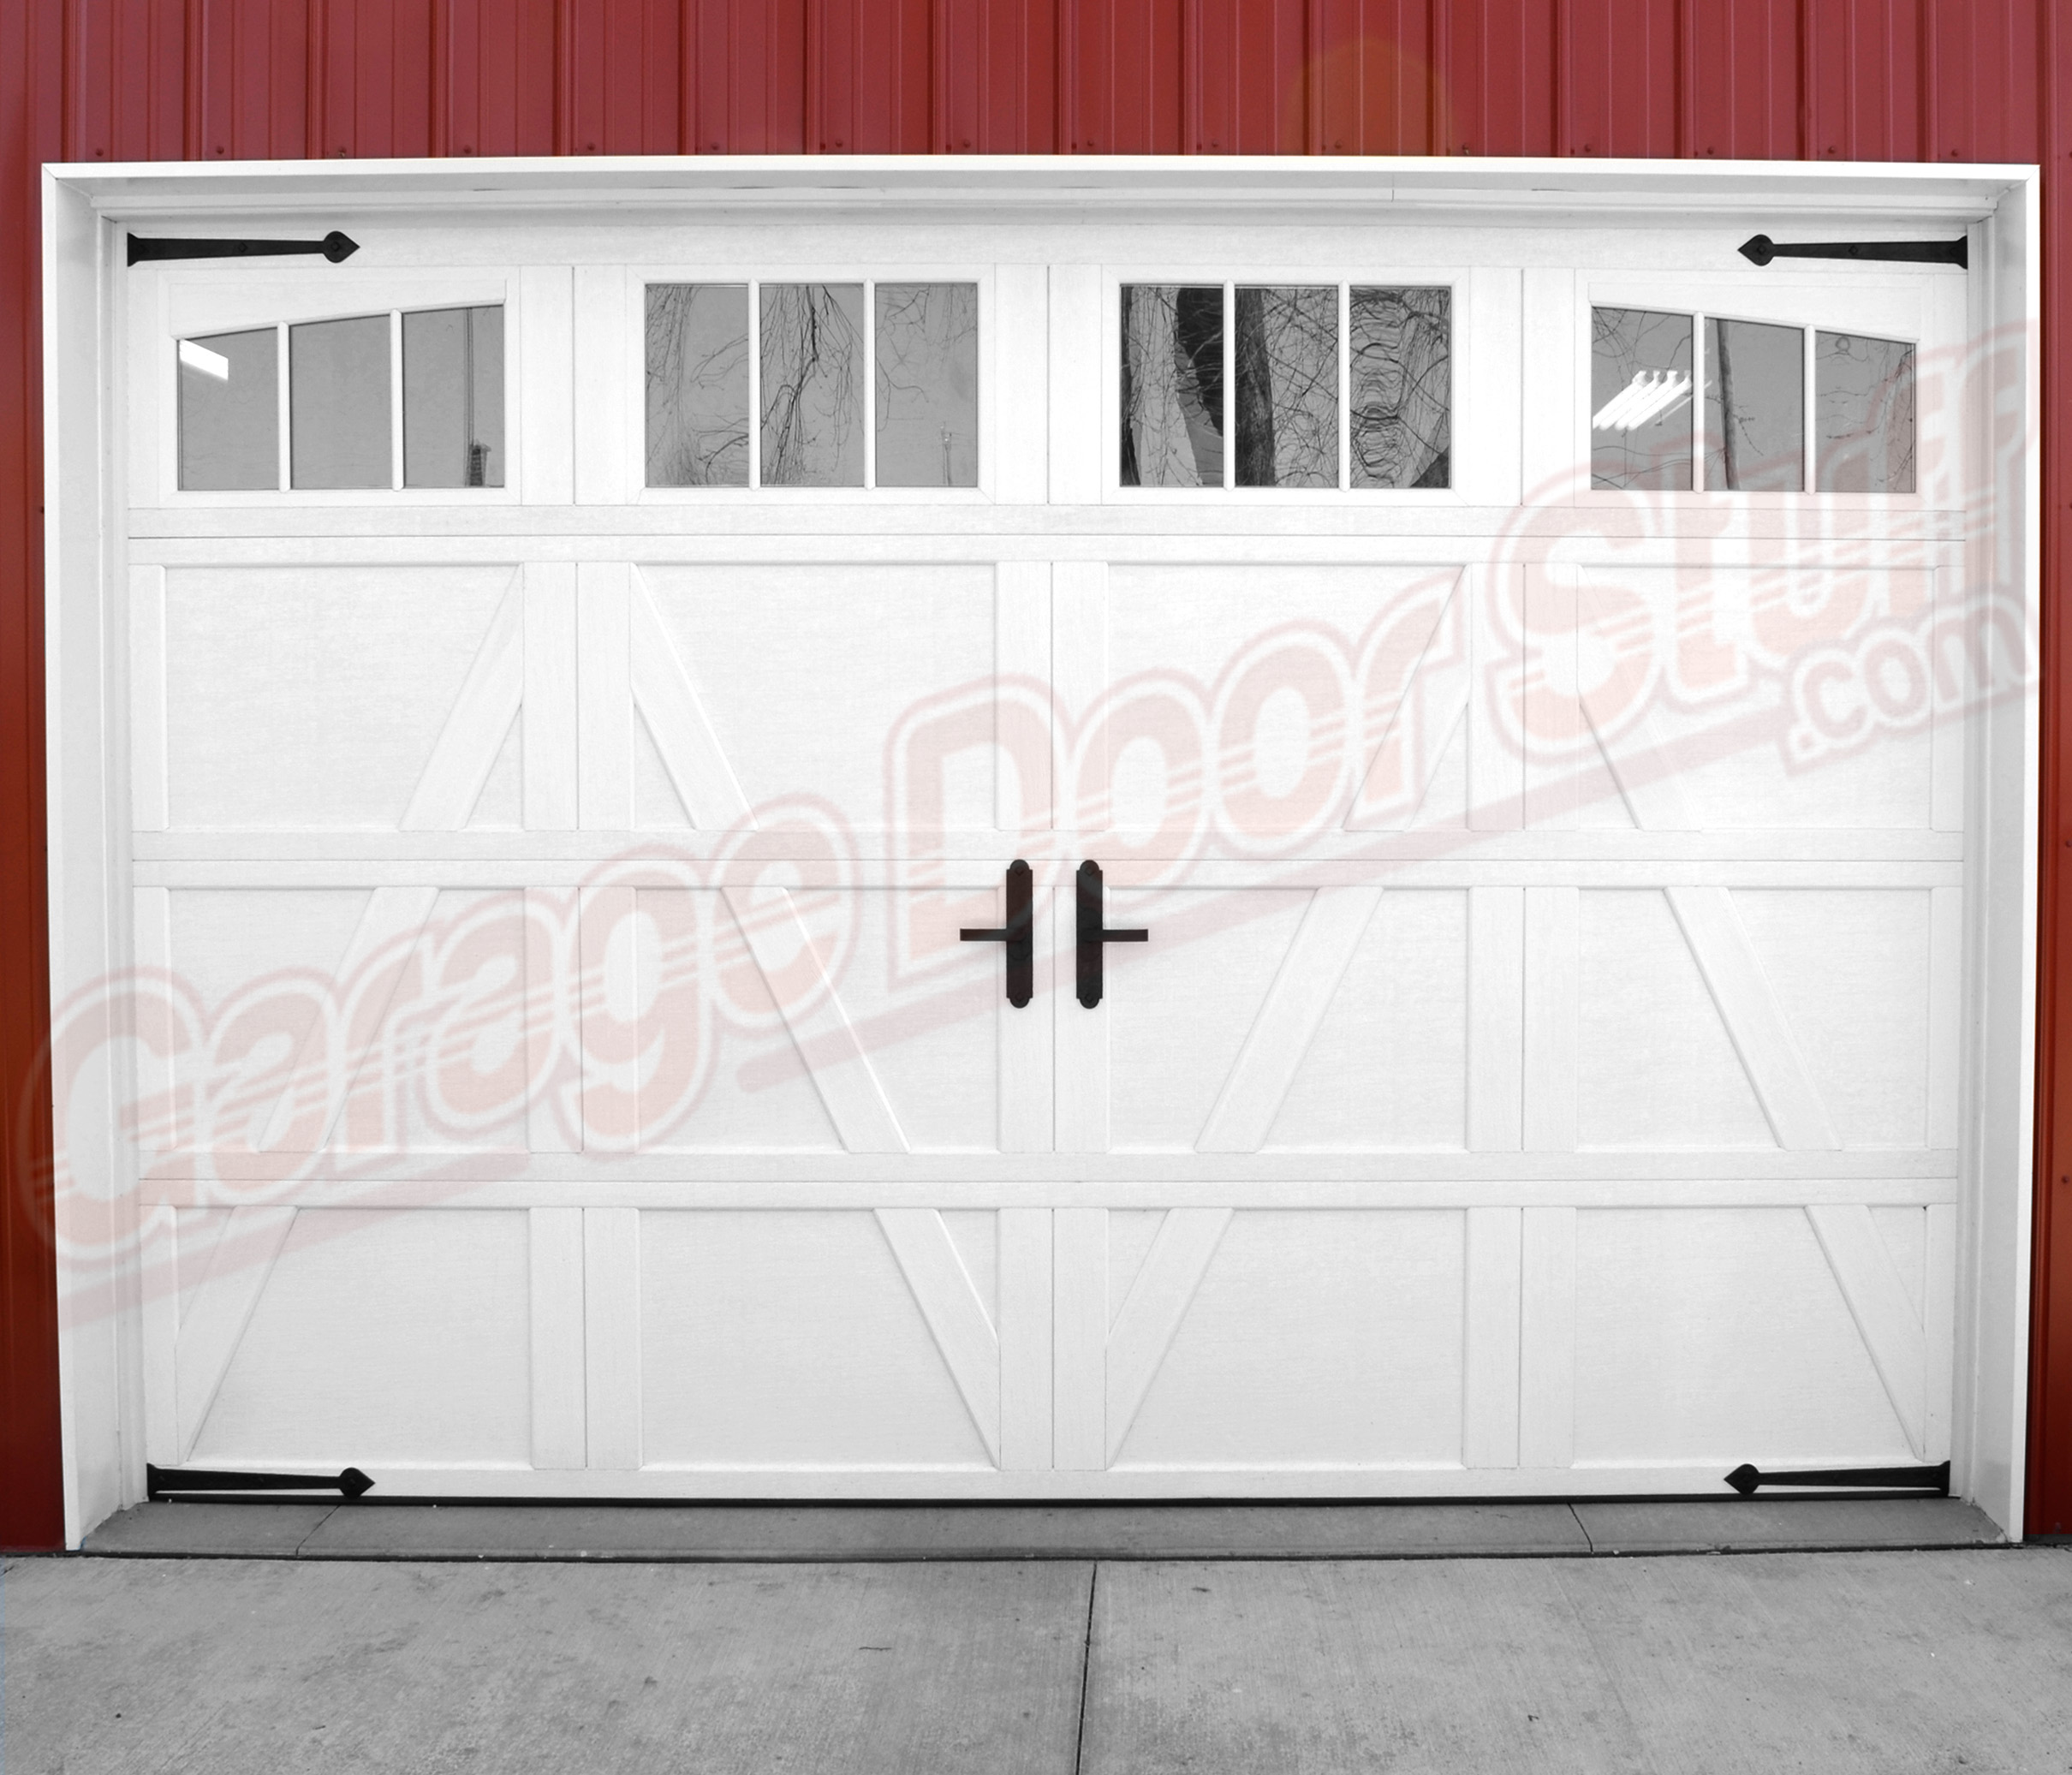 Magnetic Decorative Garage Door Hardware Garage Door Stuff